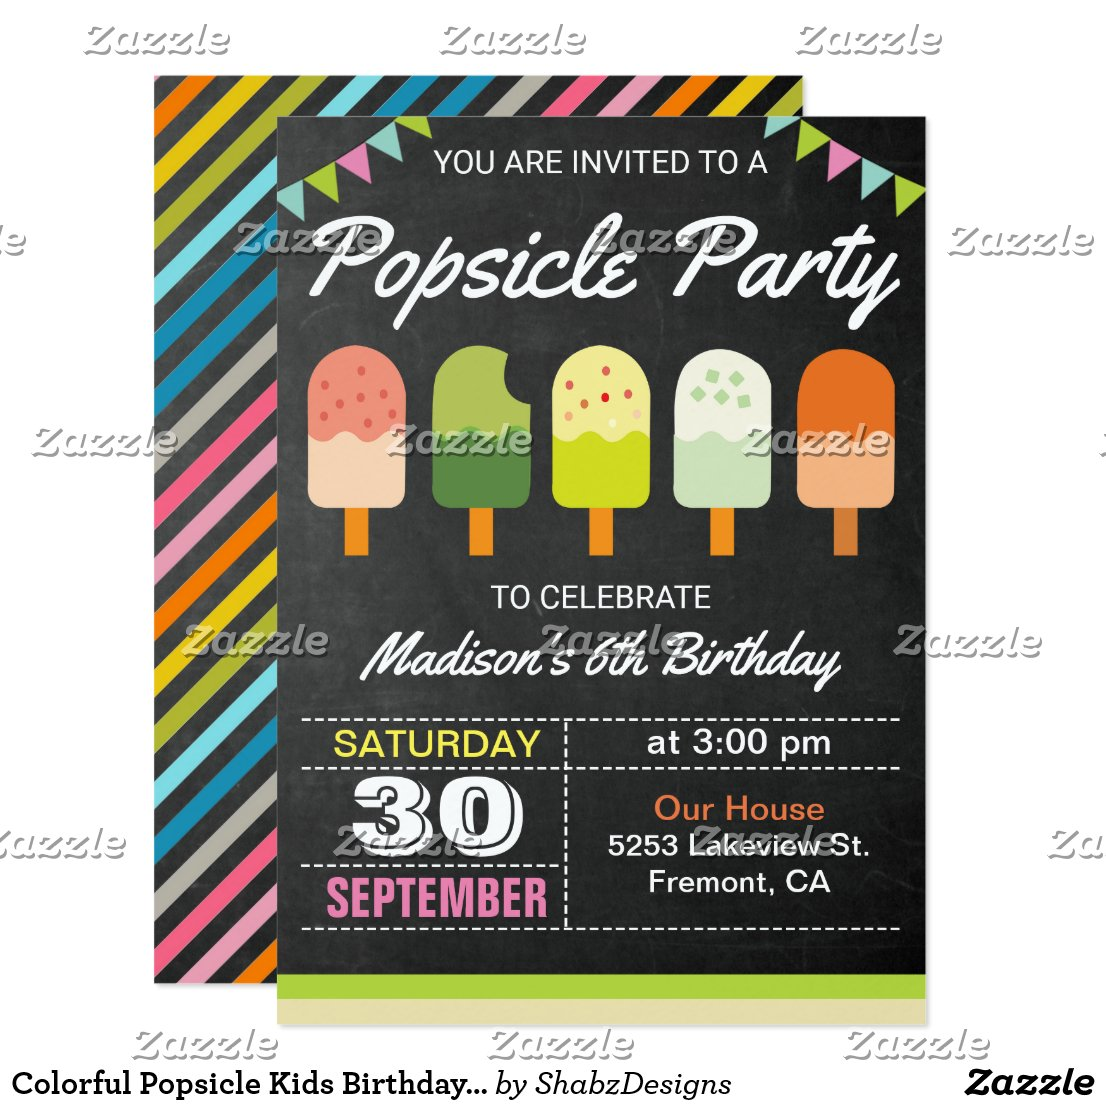 Colorful Popsicle Kids Birthday Party Invitation